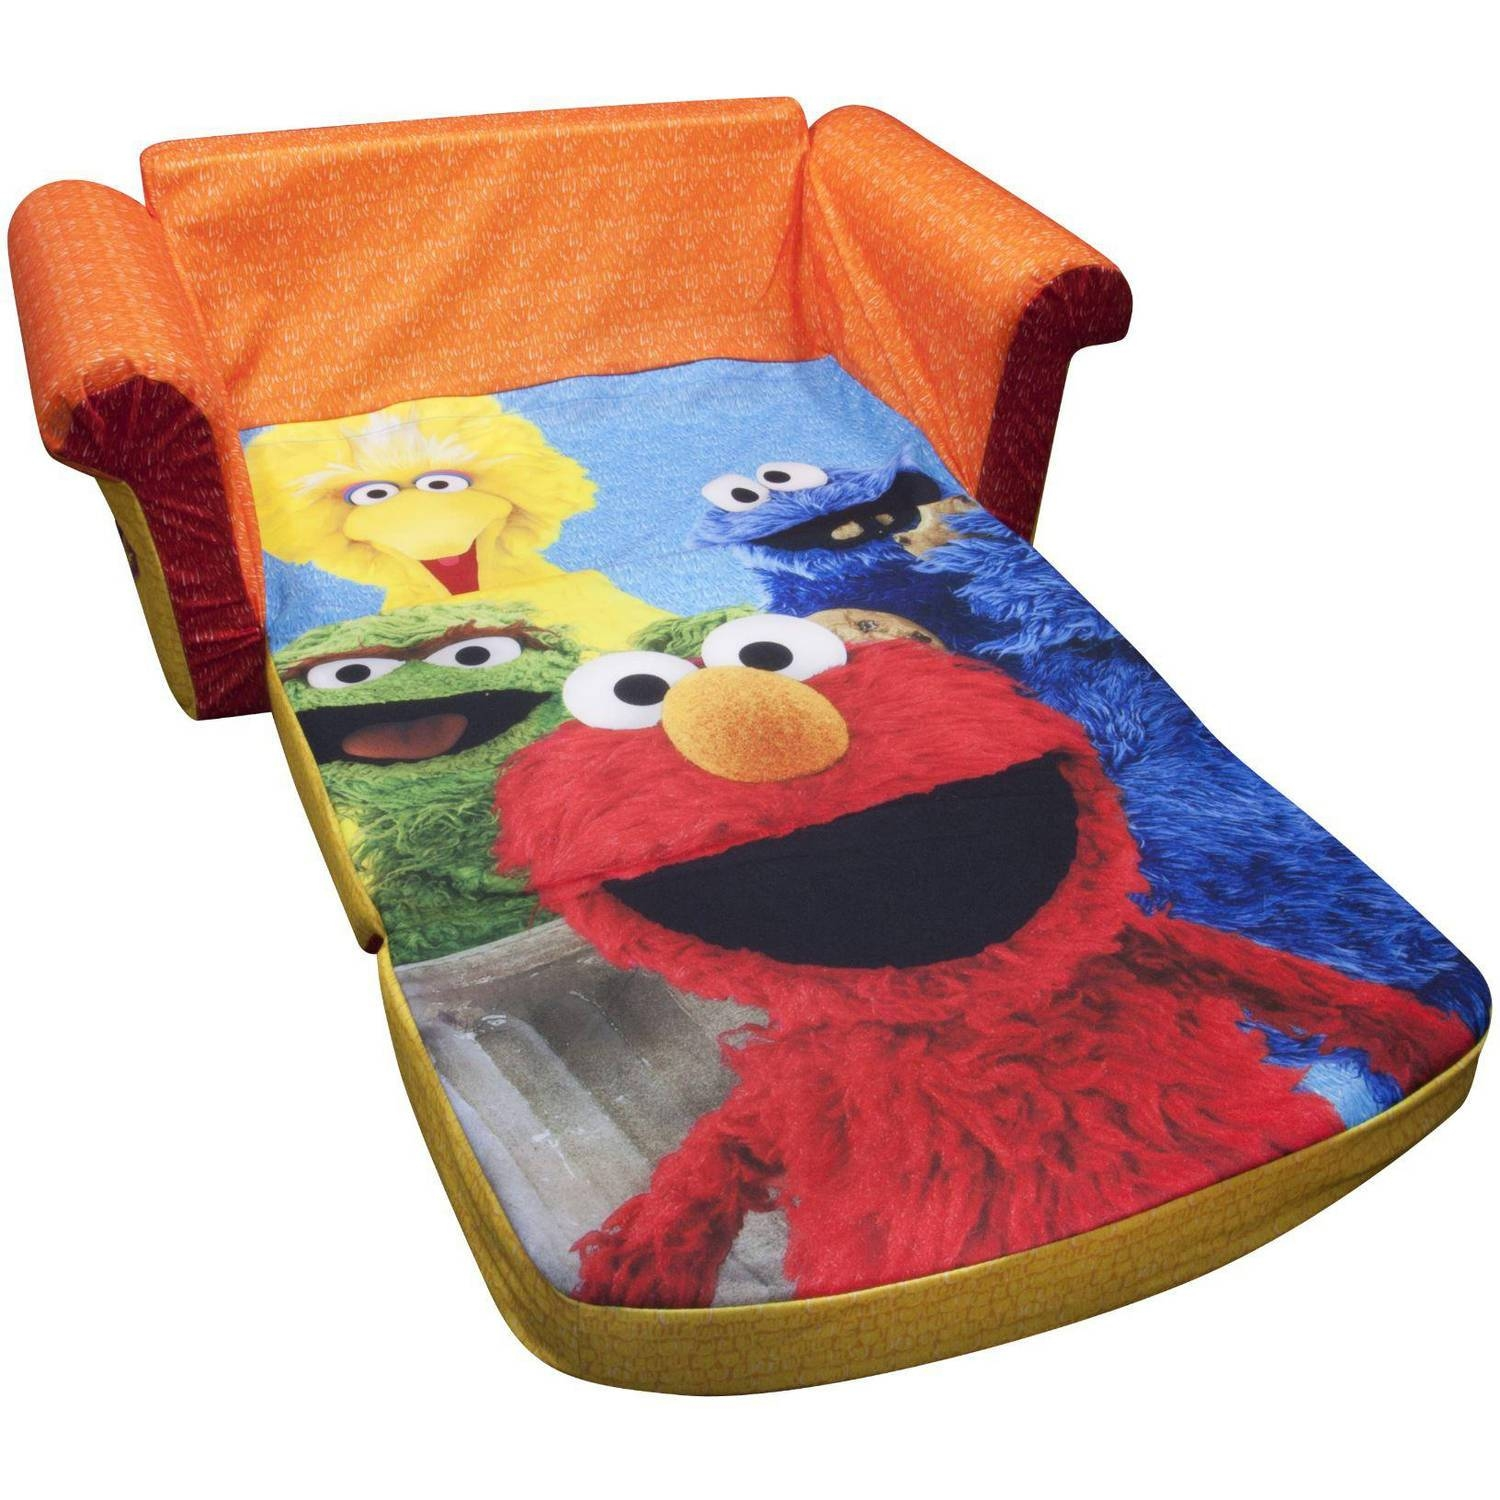 Marshmallow 2-In-1 Flip Open Sofa, Sesame Street's Elmo - Walmart with regard to Sofa Beds For Baby (Image 7 of 15)